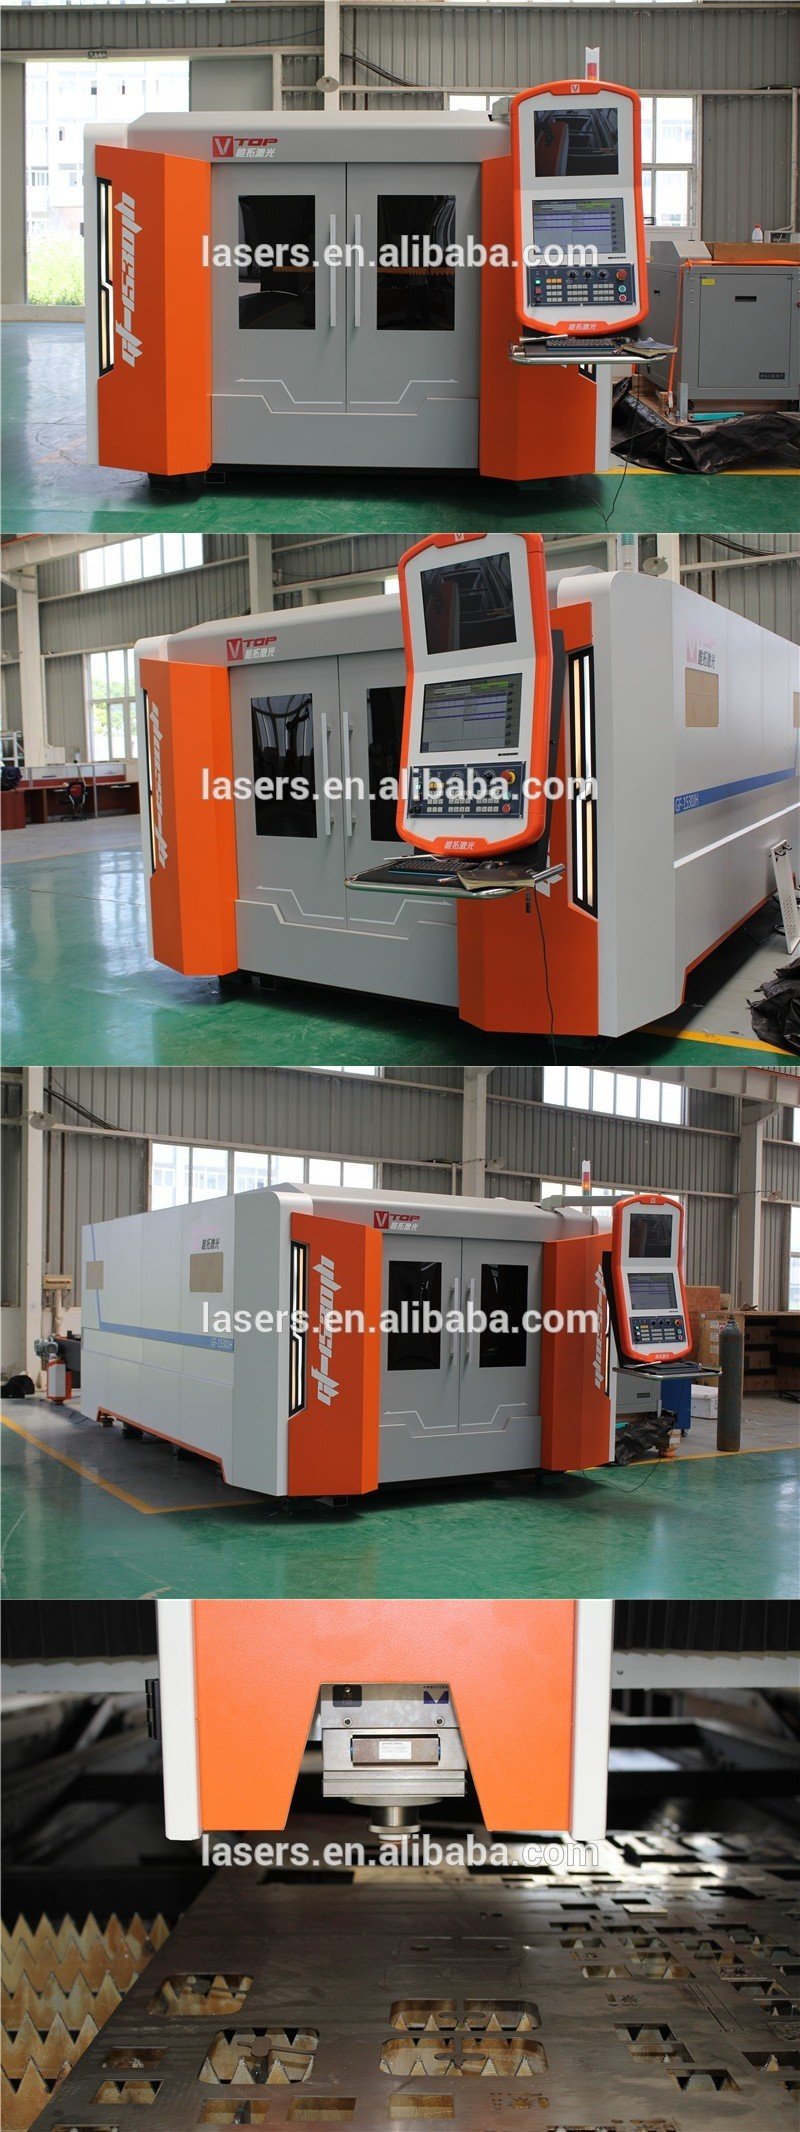 N-light fiber laser cutting machine for aluminum / copper / brass / galvanized steel sheet